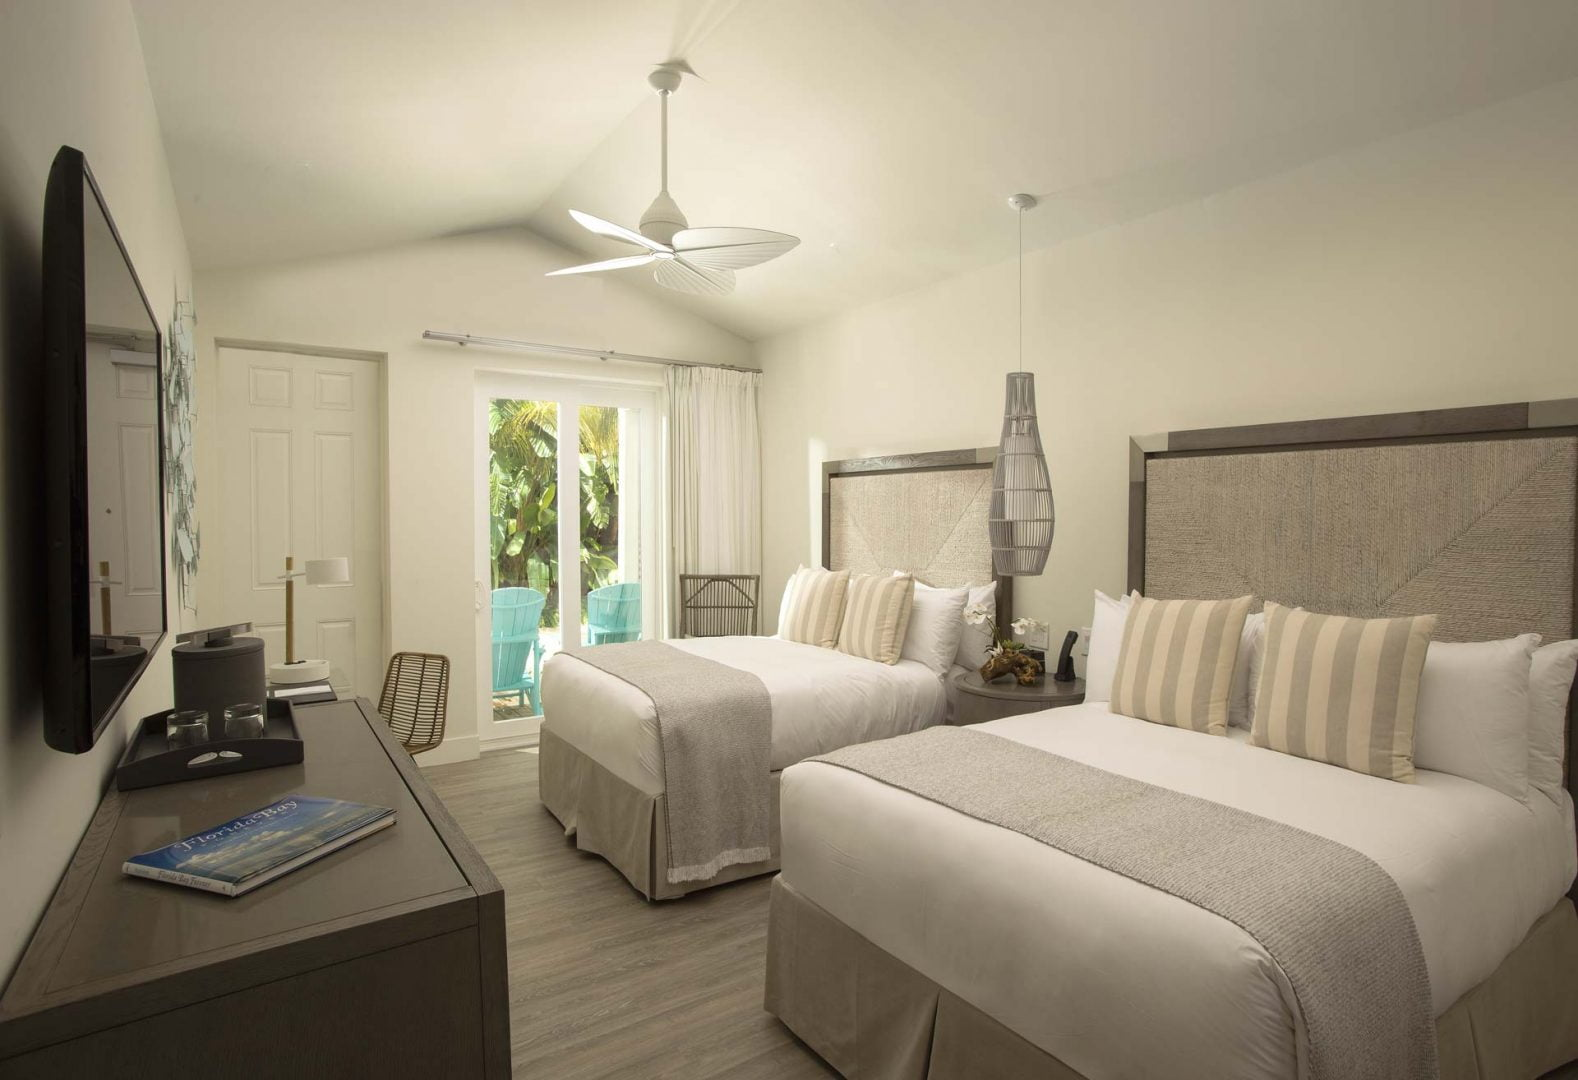 bungalow interior with two queen beds